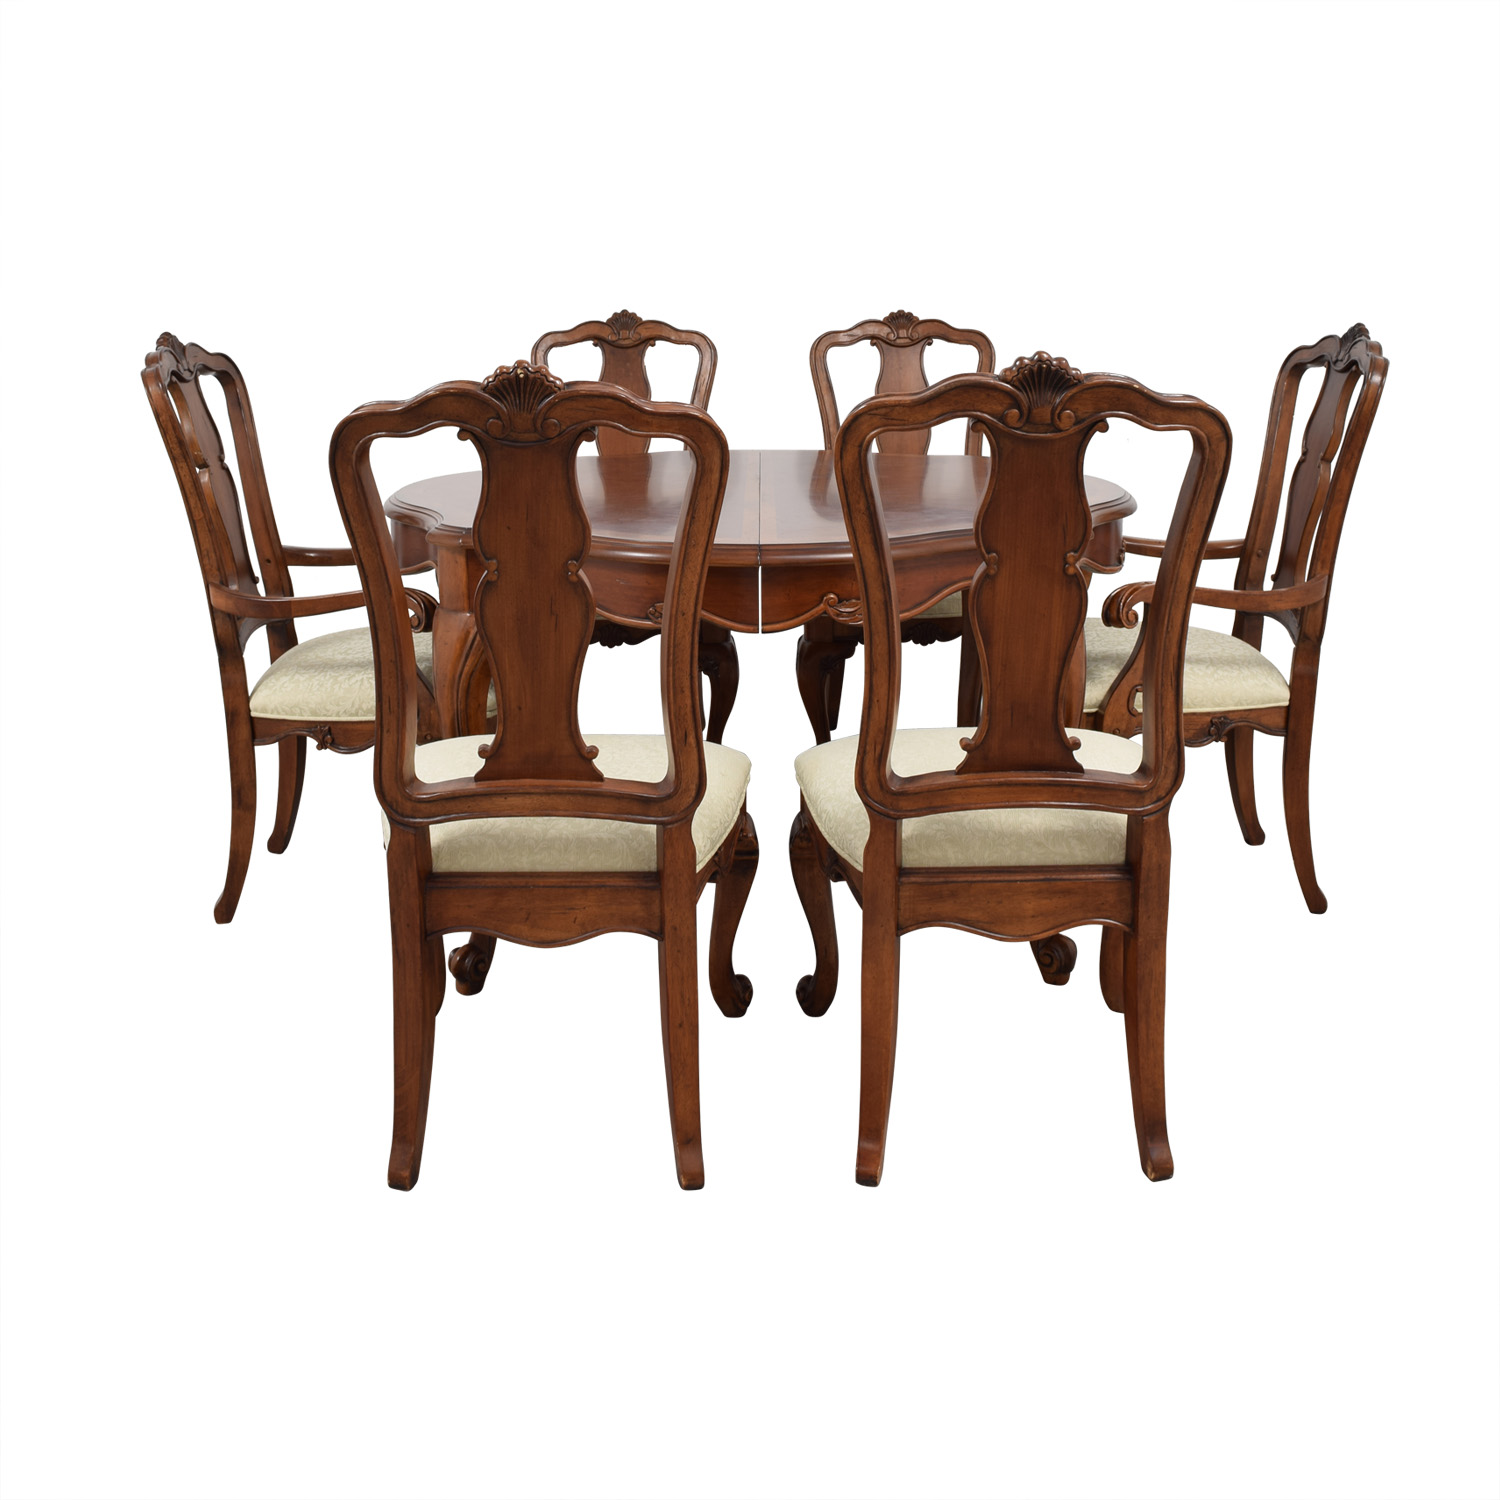 Macy's Macy's Dovetailed Wood Extendable Dining Set Chairs